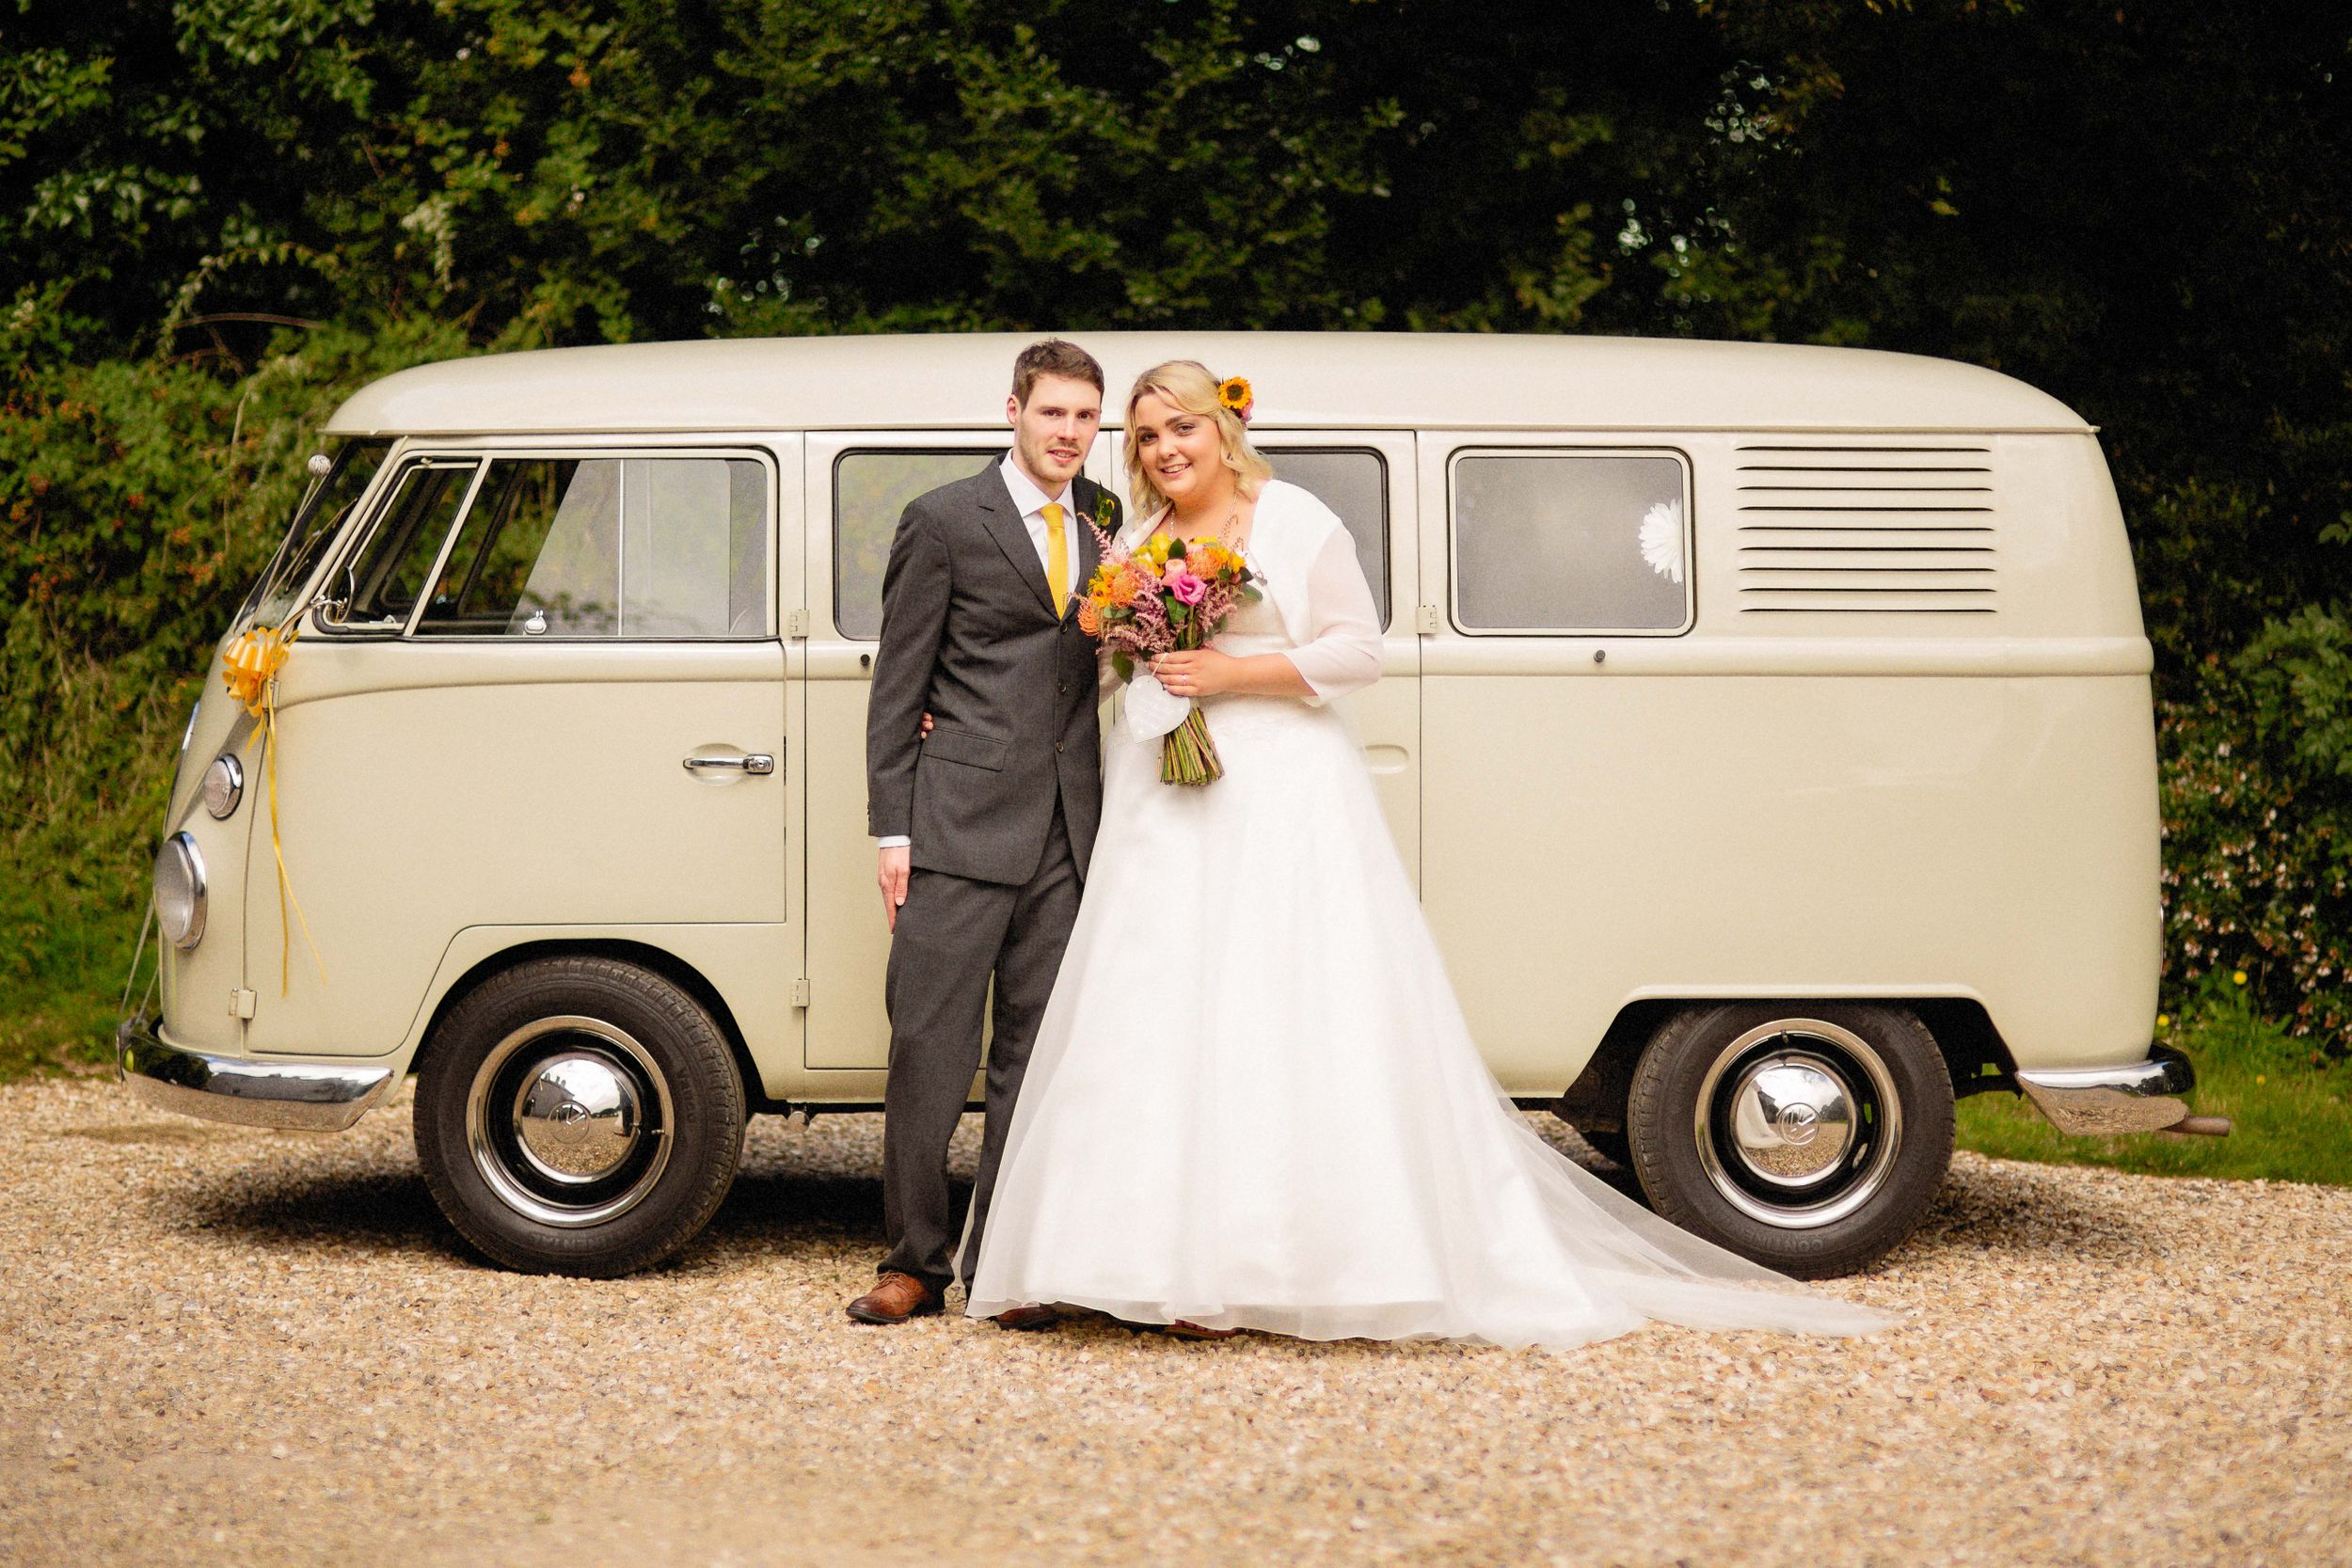 bride and groom wedding portrait by vw camper van